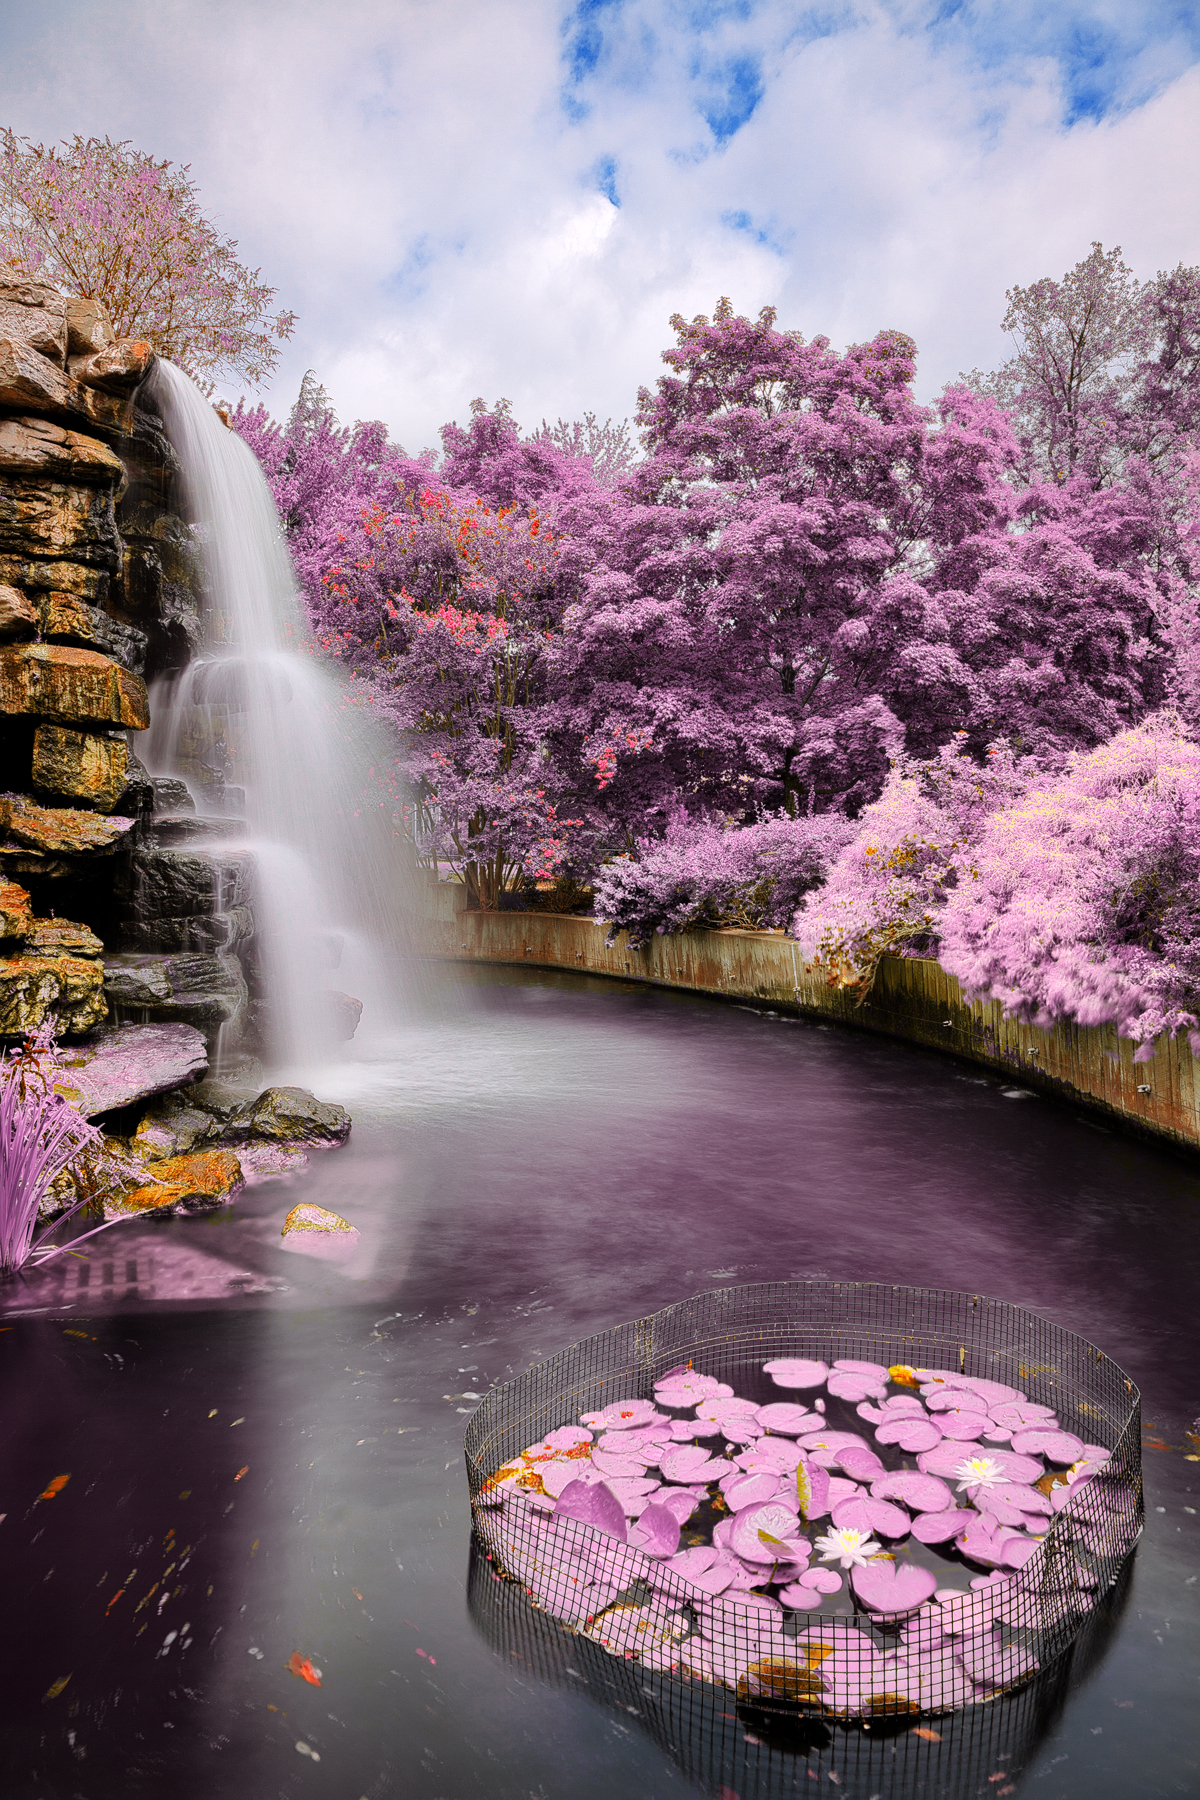 Zoo waterfall - ultra violet hdr photo